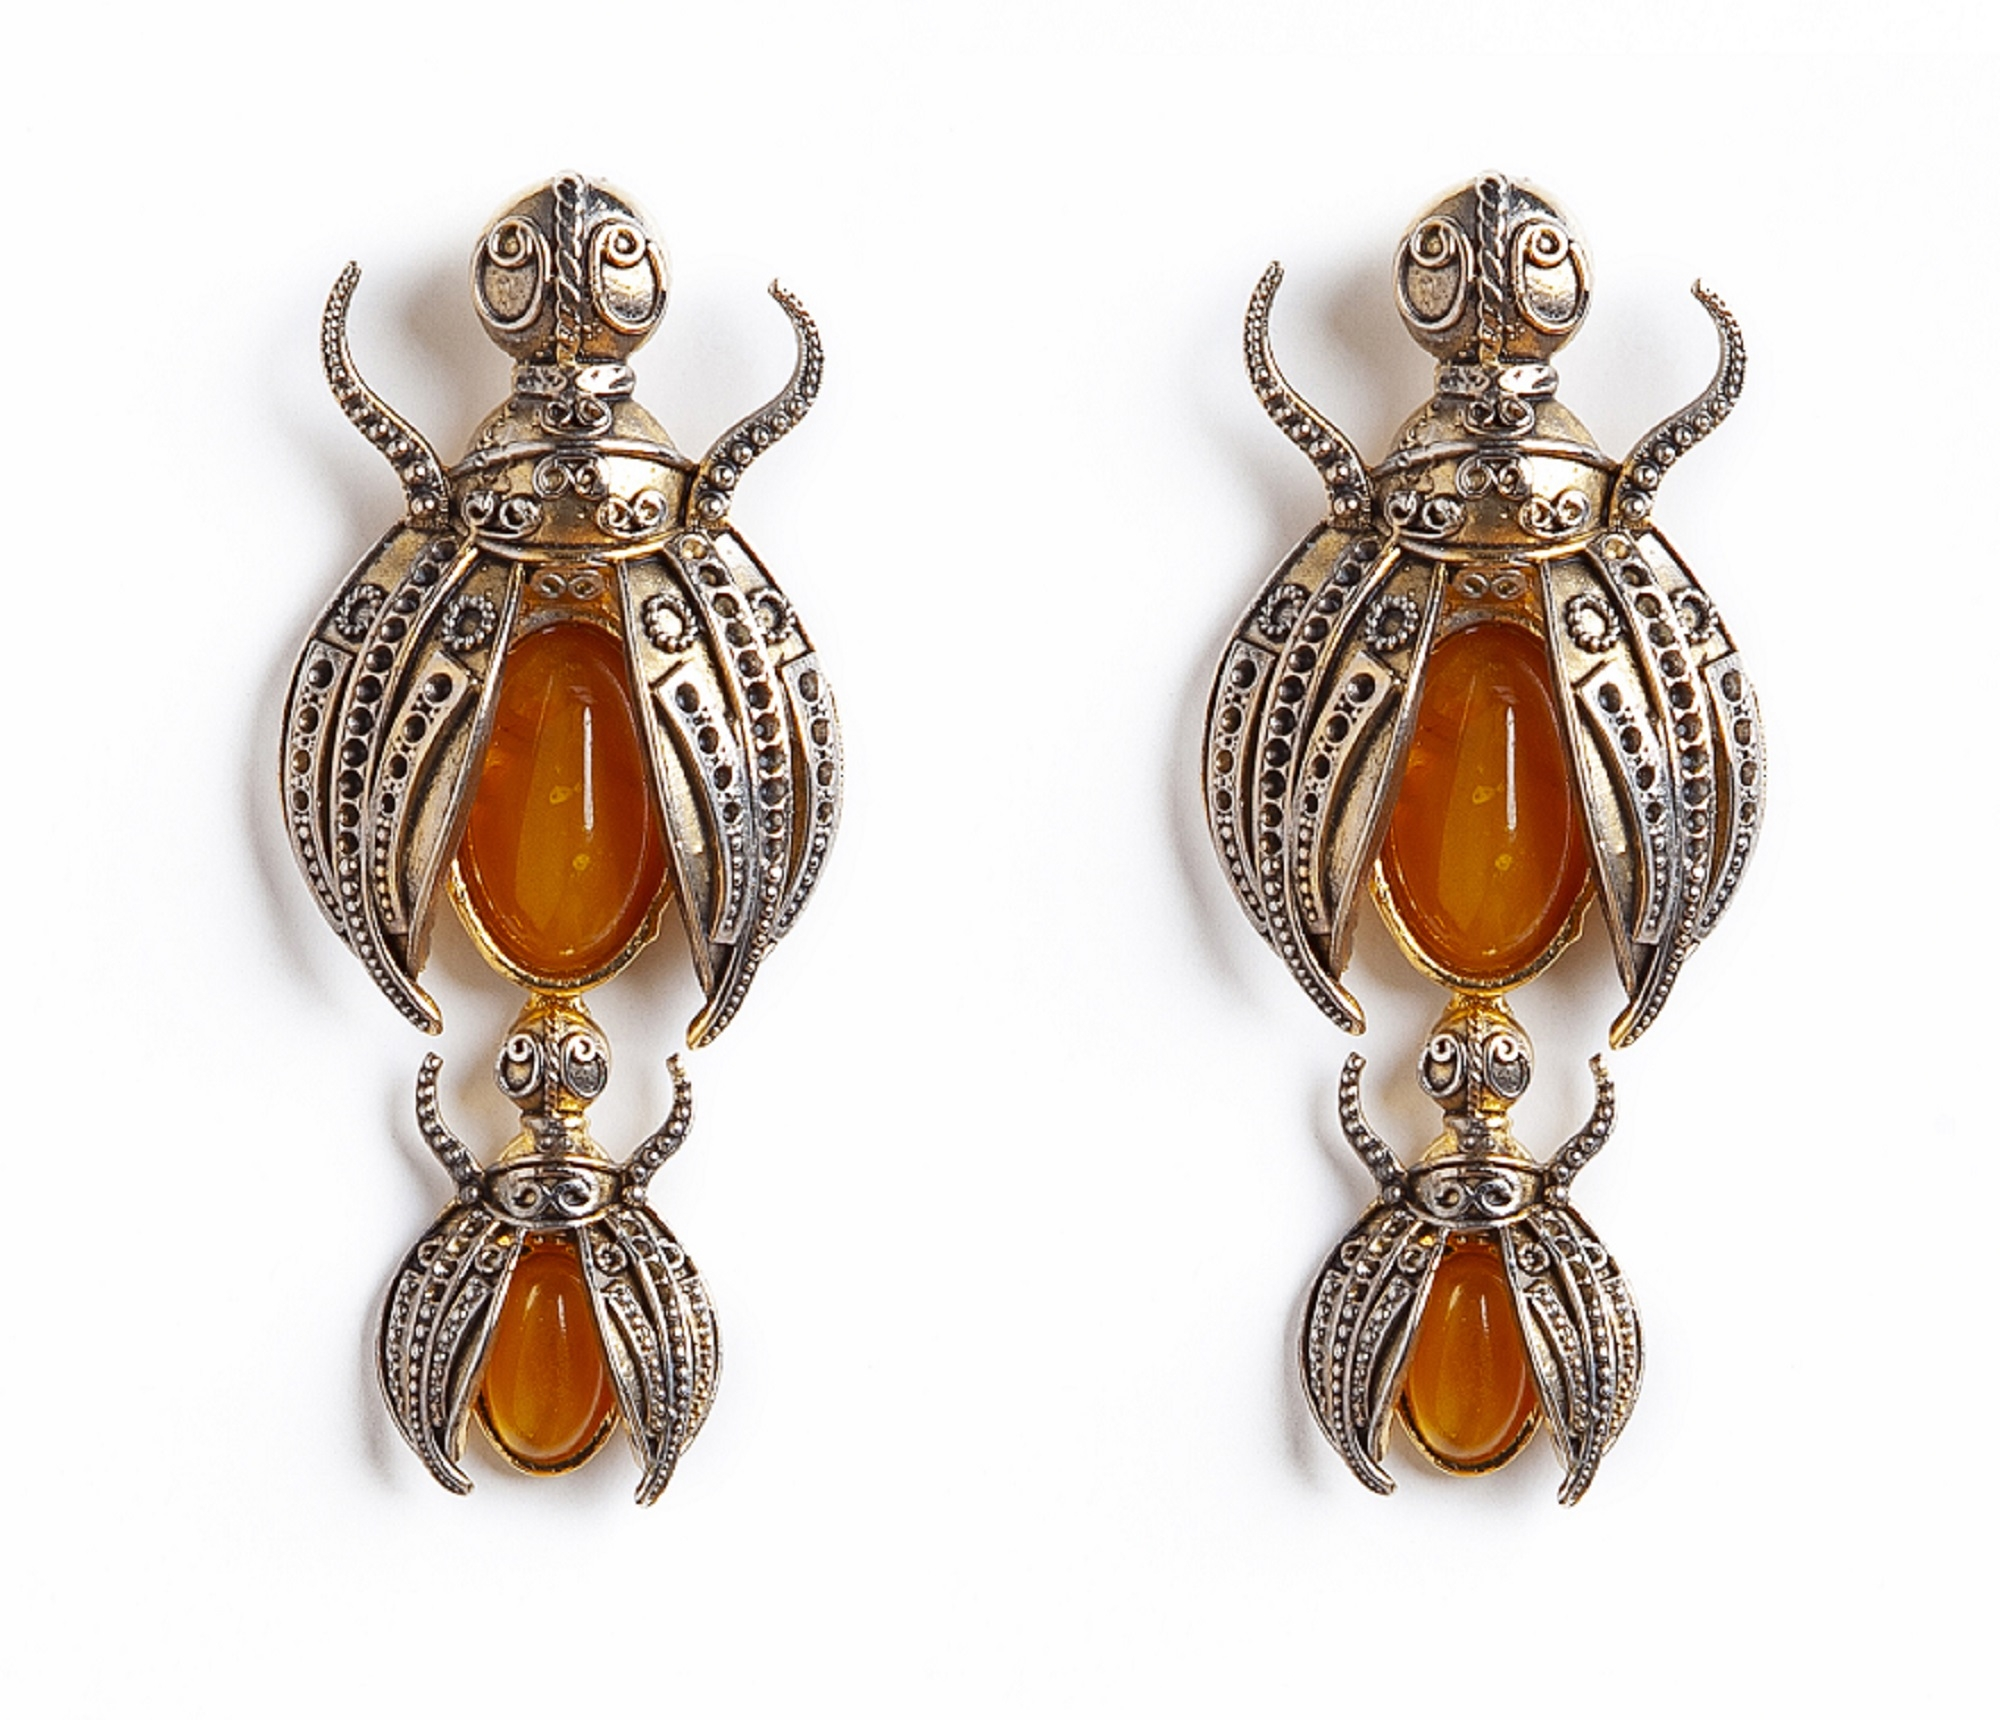 Scarab Luxury Earrings (Pierced) by Sonia Petroff on curated-crowd.com